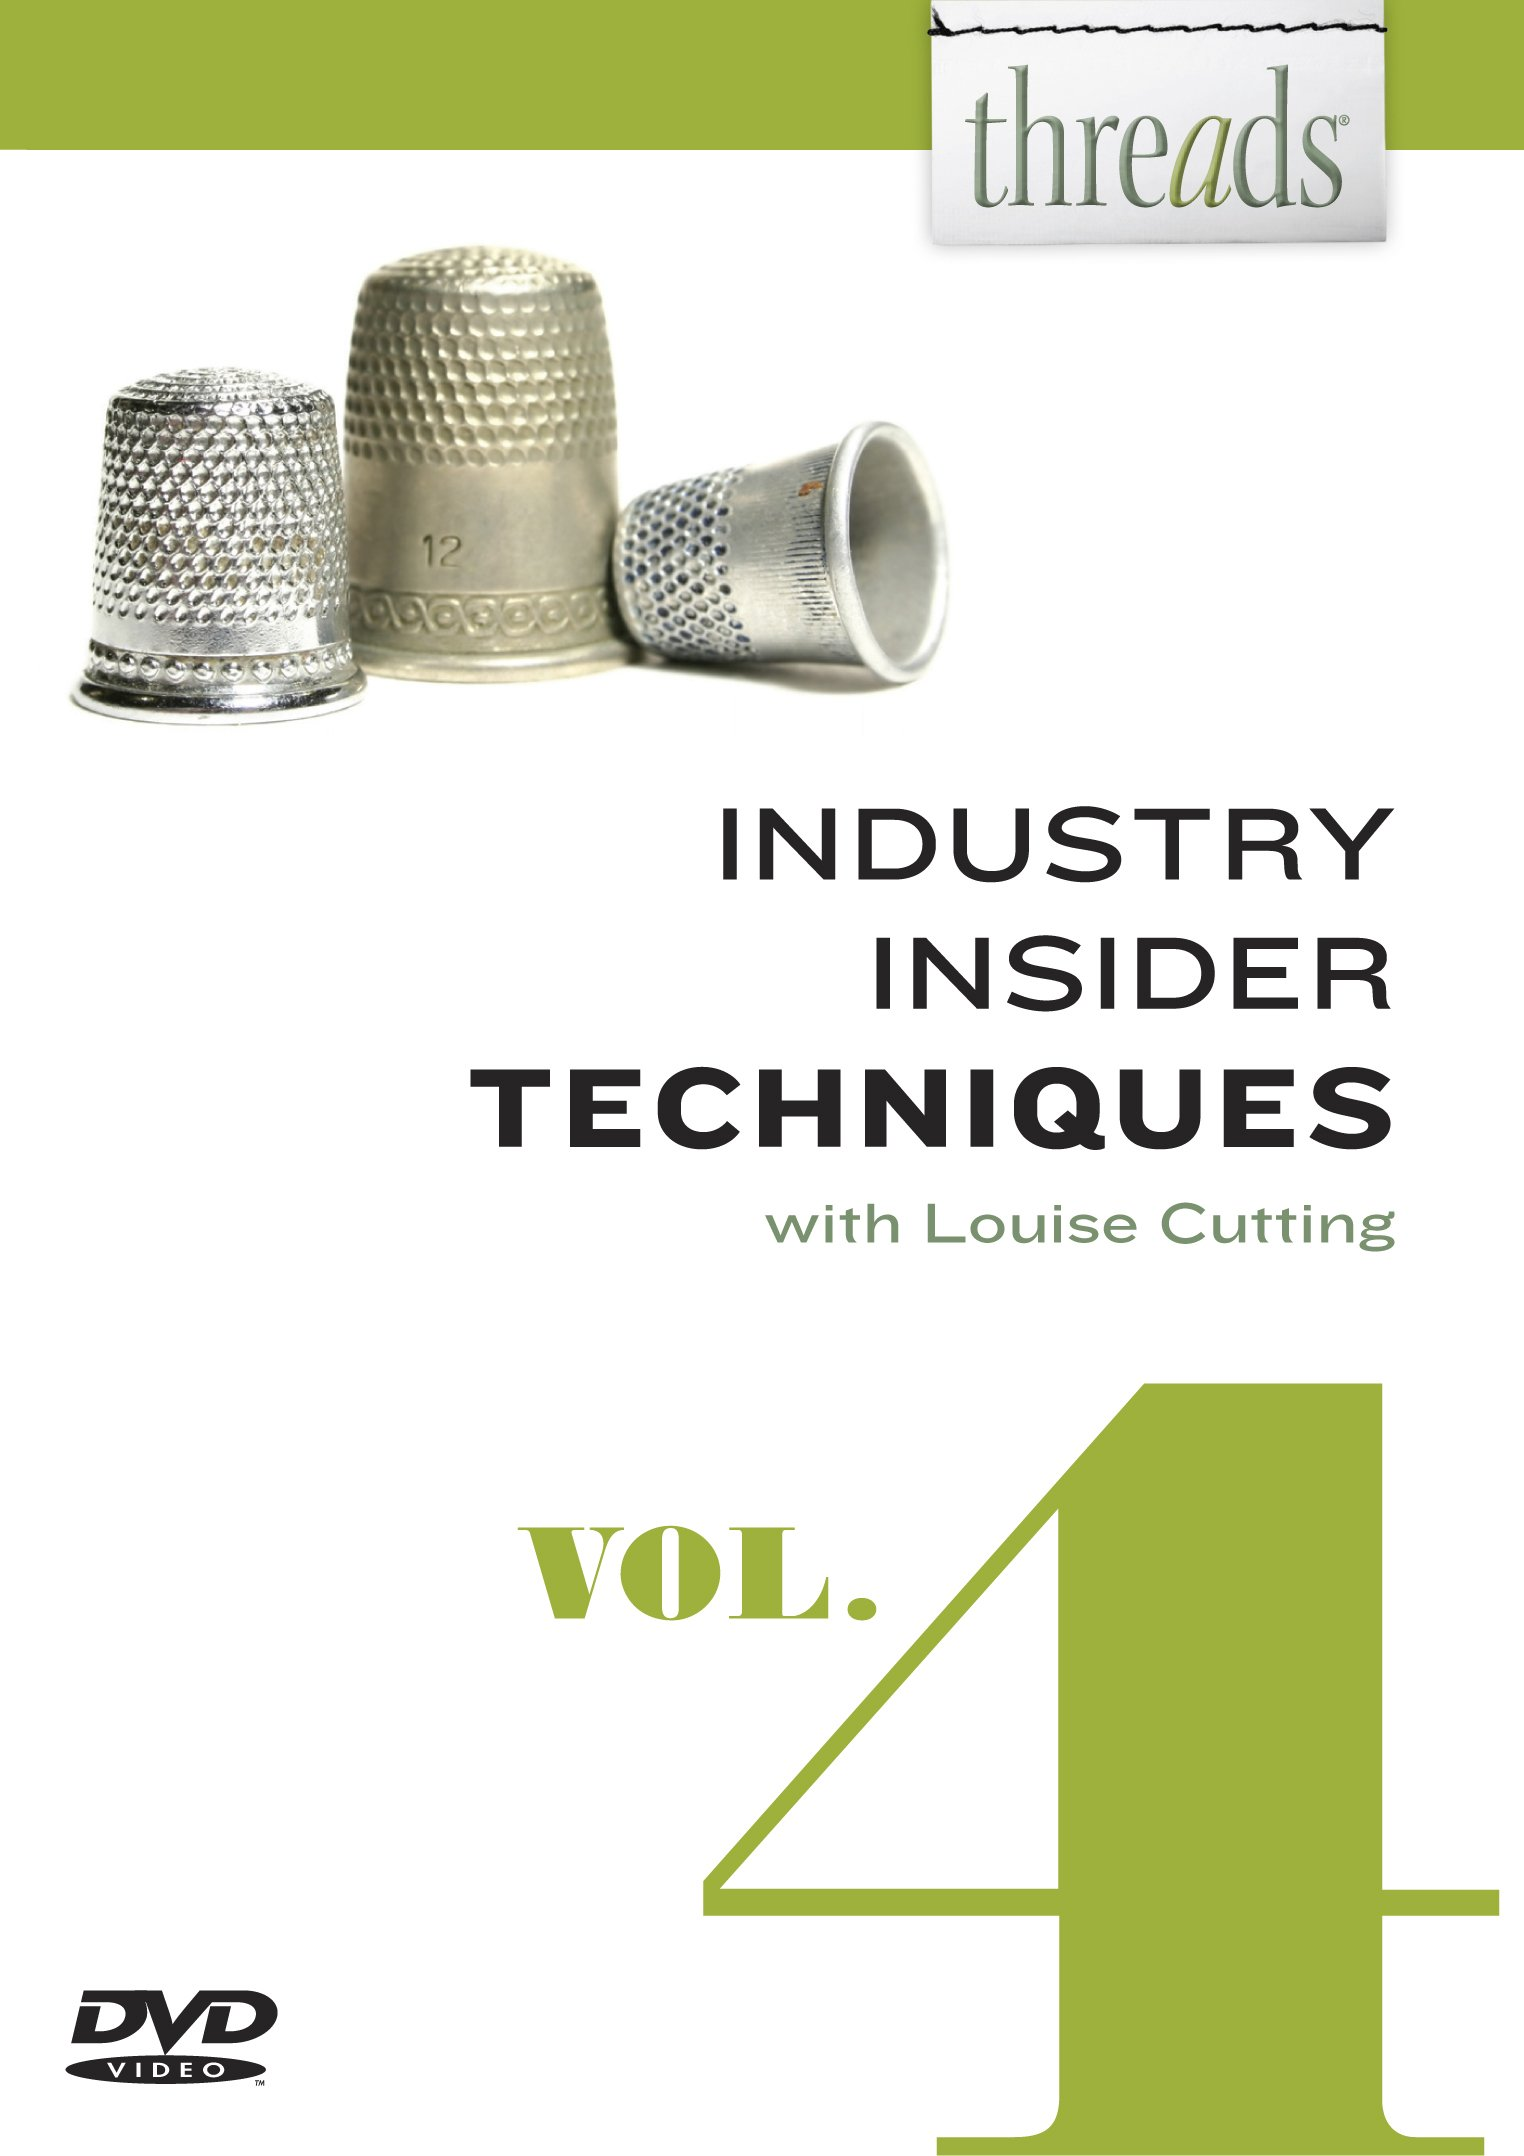 Threads Industry Insider Techniques, Vol. 4